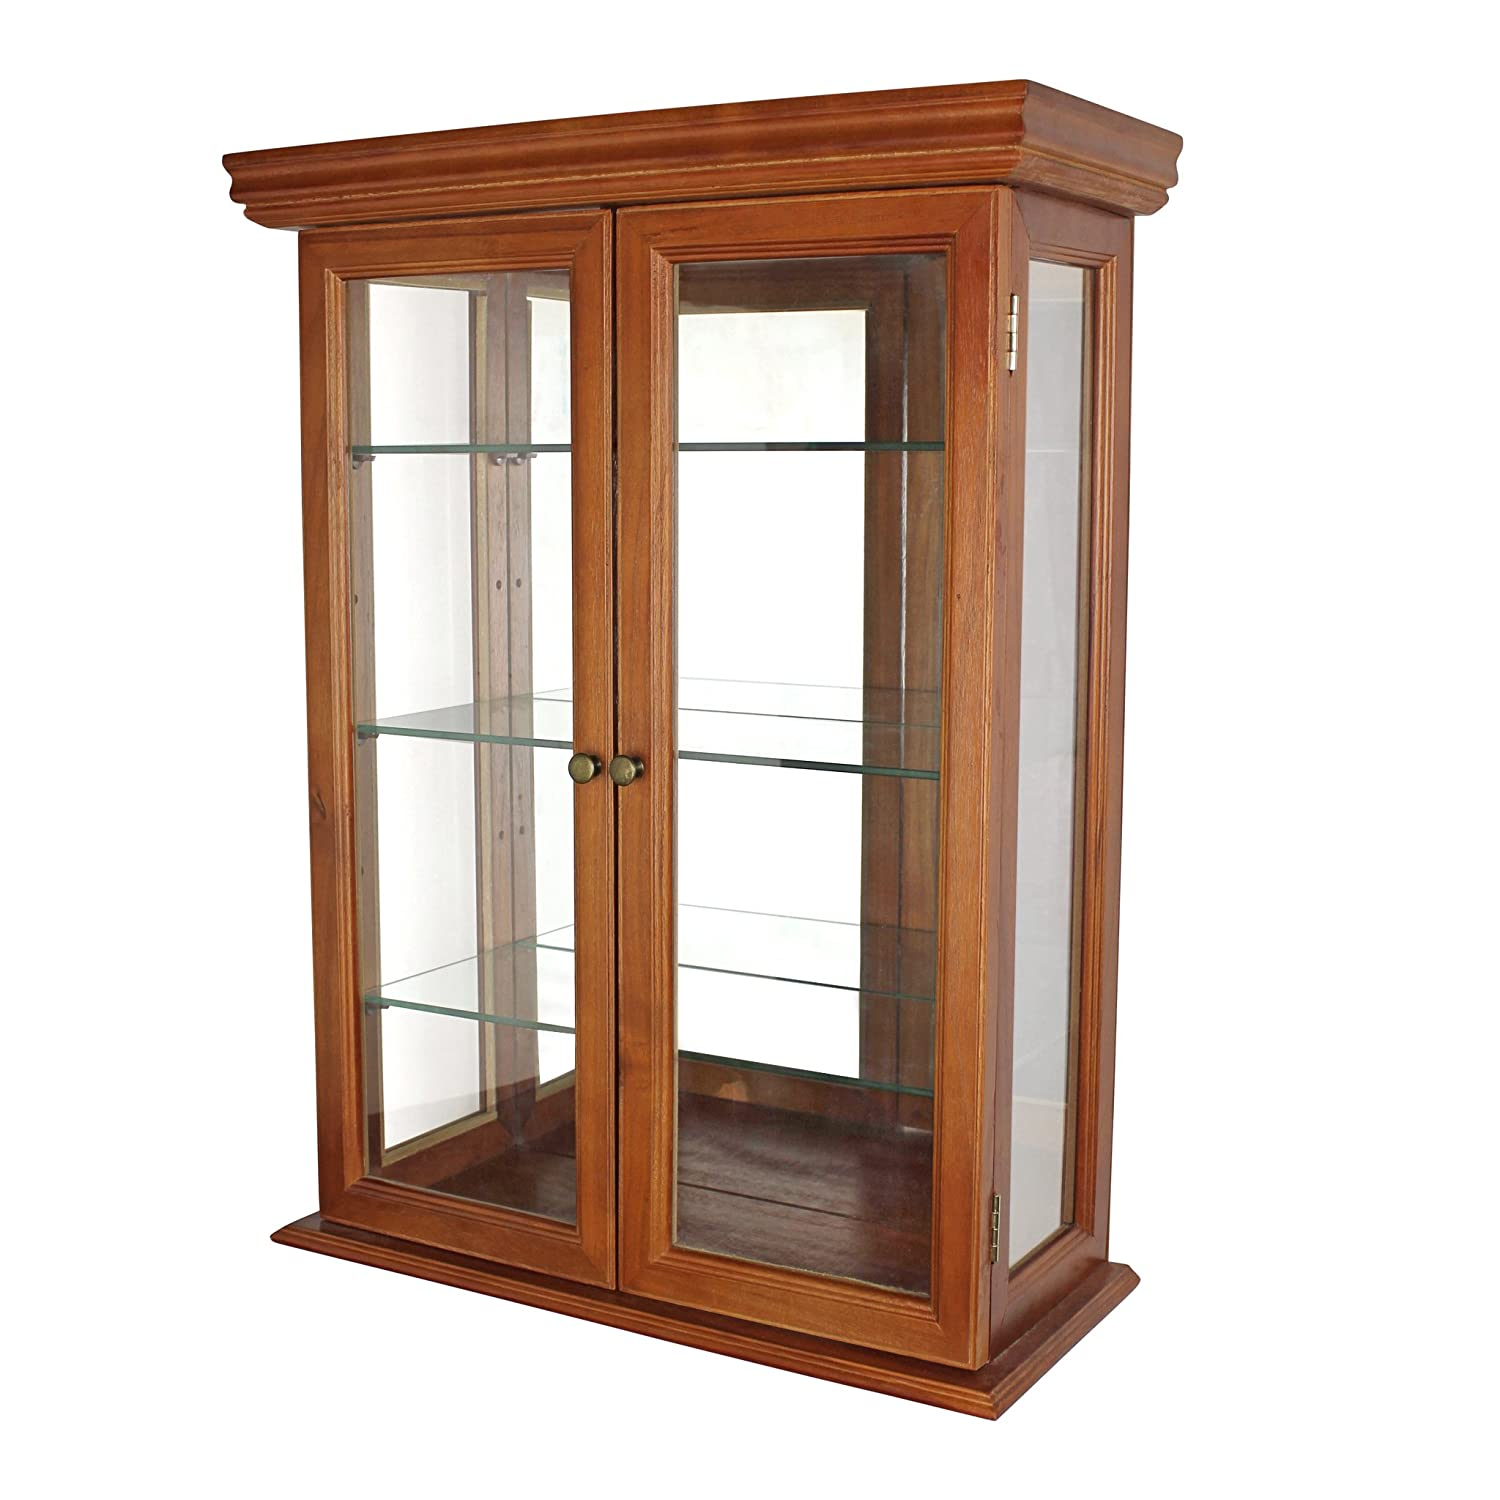 Amazon com design toscano country tuscan glass wall mounted storage curio cabinet 26 inch hardwood walnut finish kitchen dining